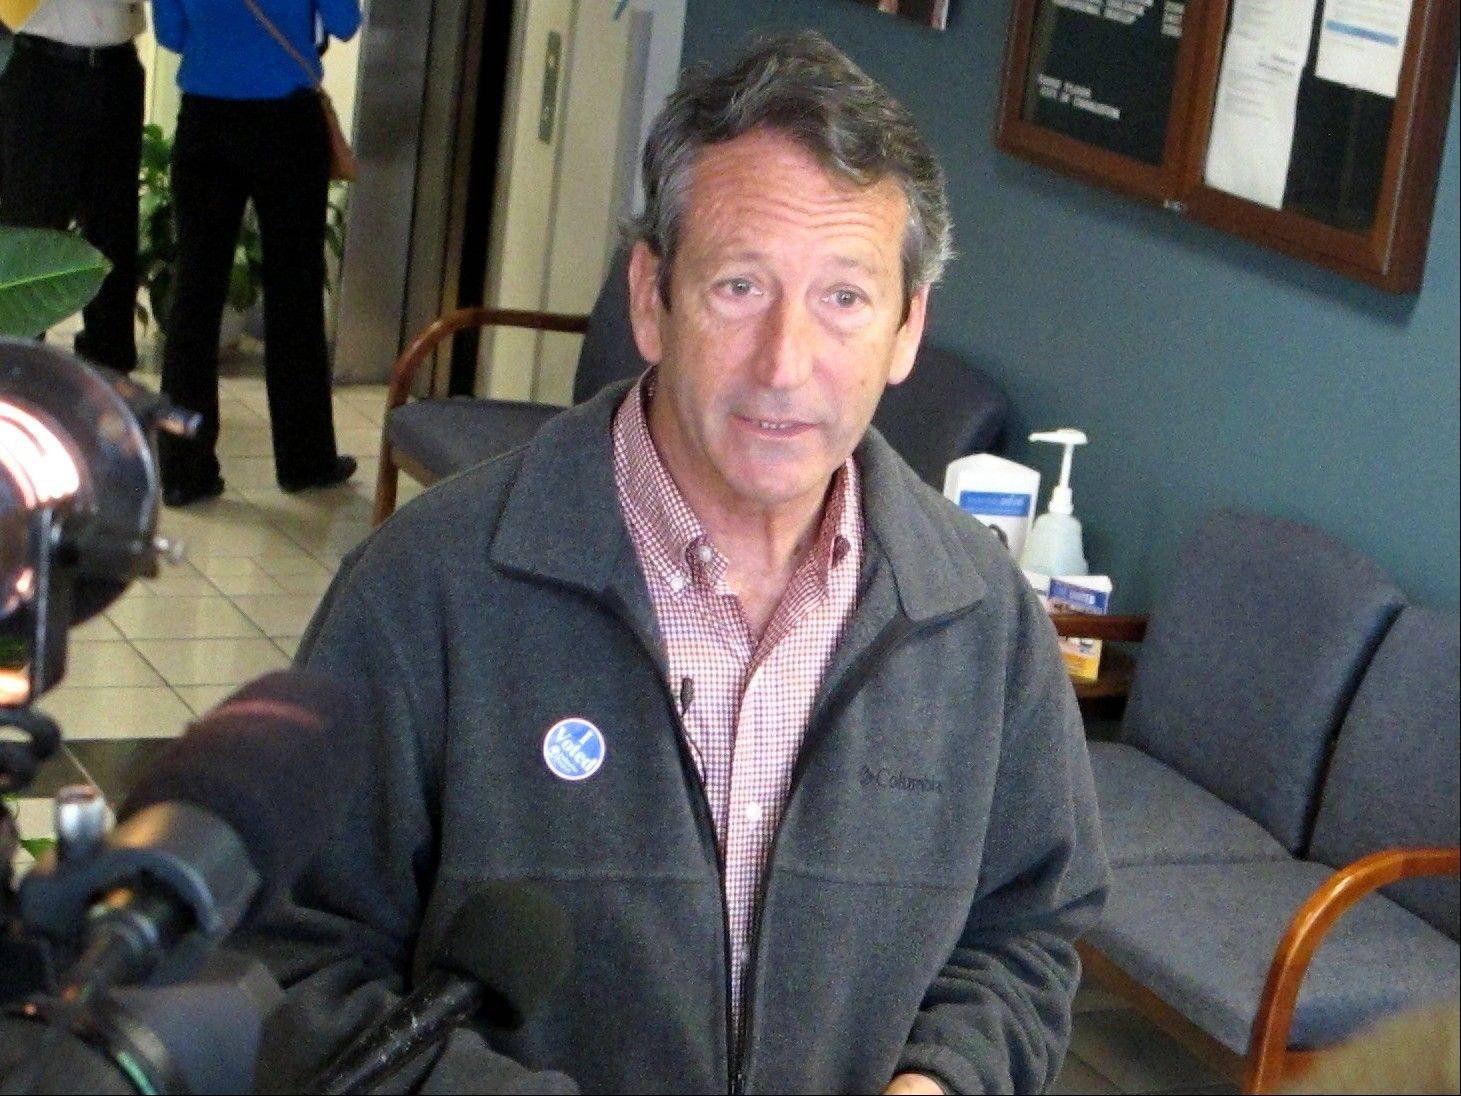 Former South Carolina Gov. Mark Sanford advanced Tuesday night to an April 2 GOP runoff for an open congressional seat in South Carolina�s vacant 1st District.